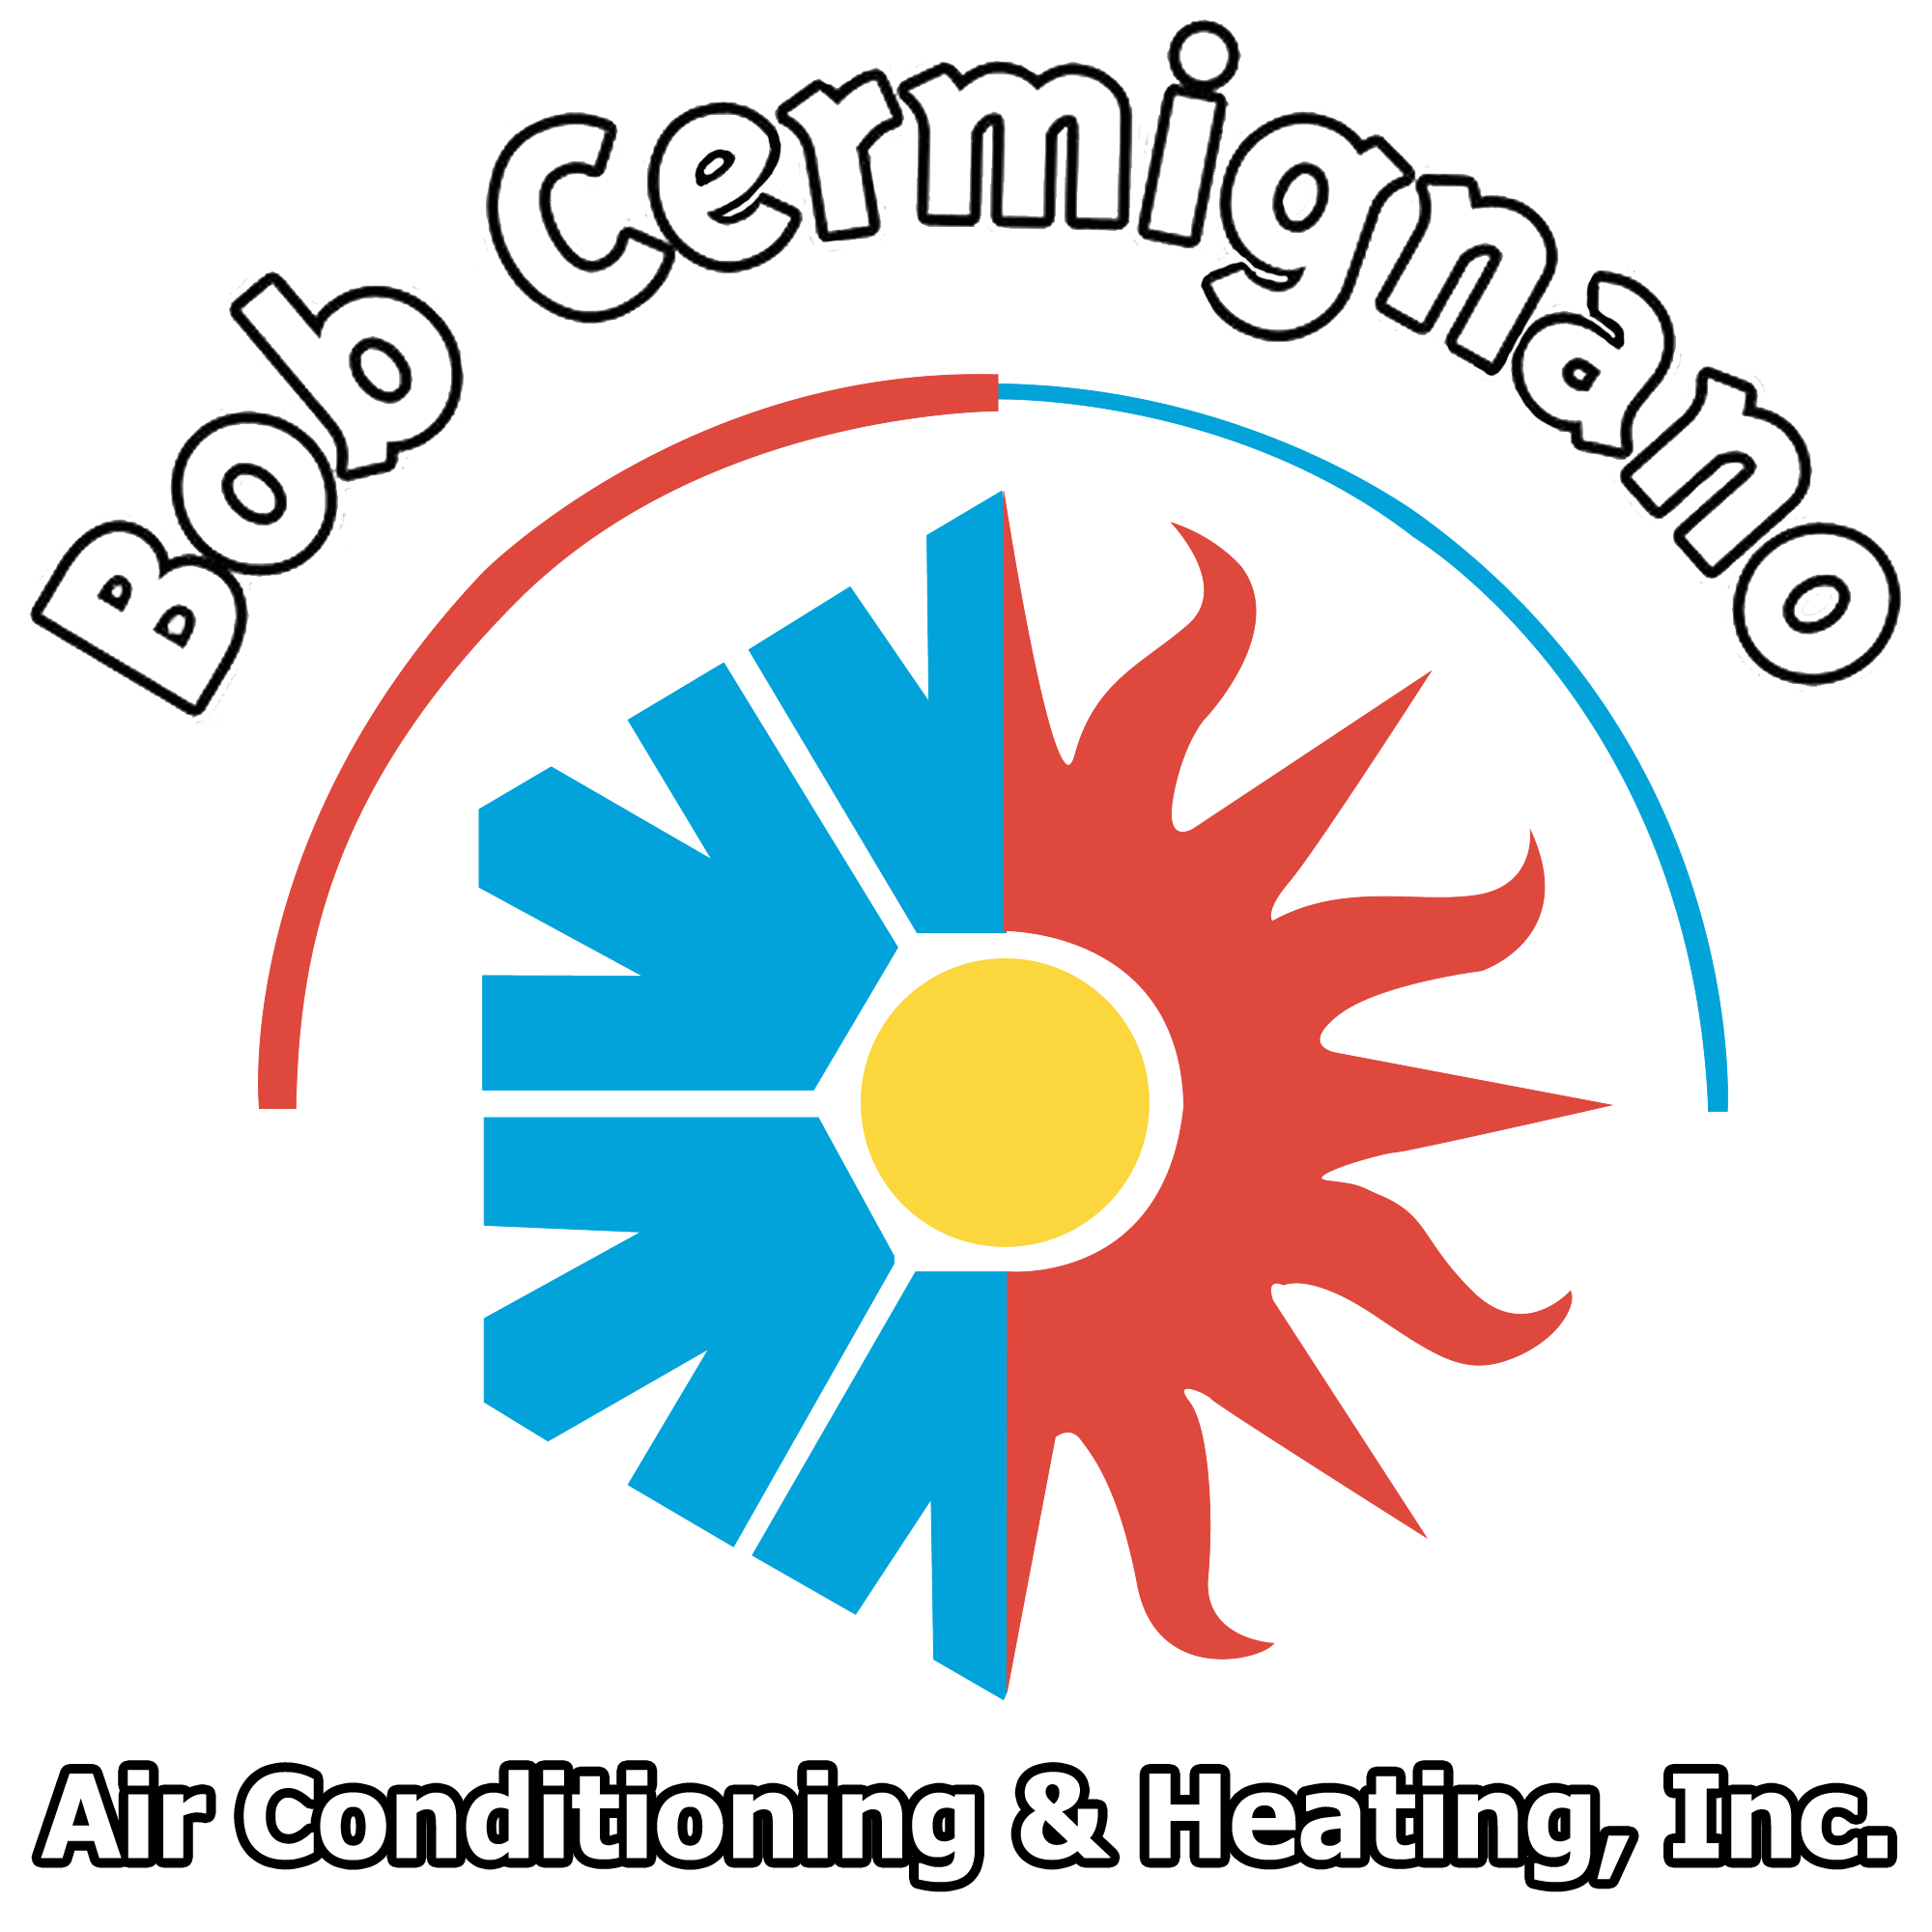 WHAT IS EMERGENCY HEAT? | Bob Cermignano Air Conditioning & Heating ...